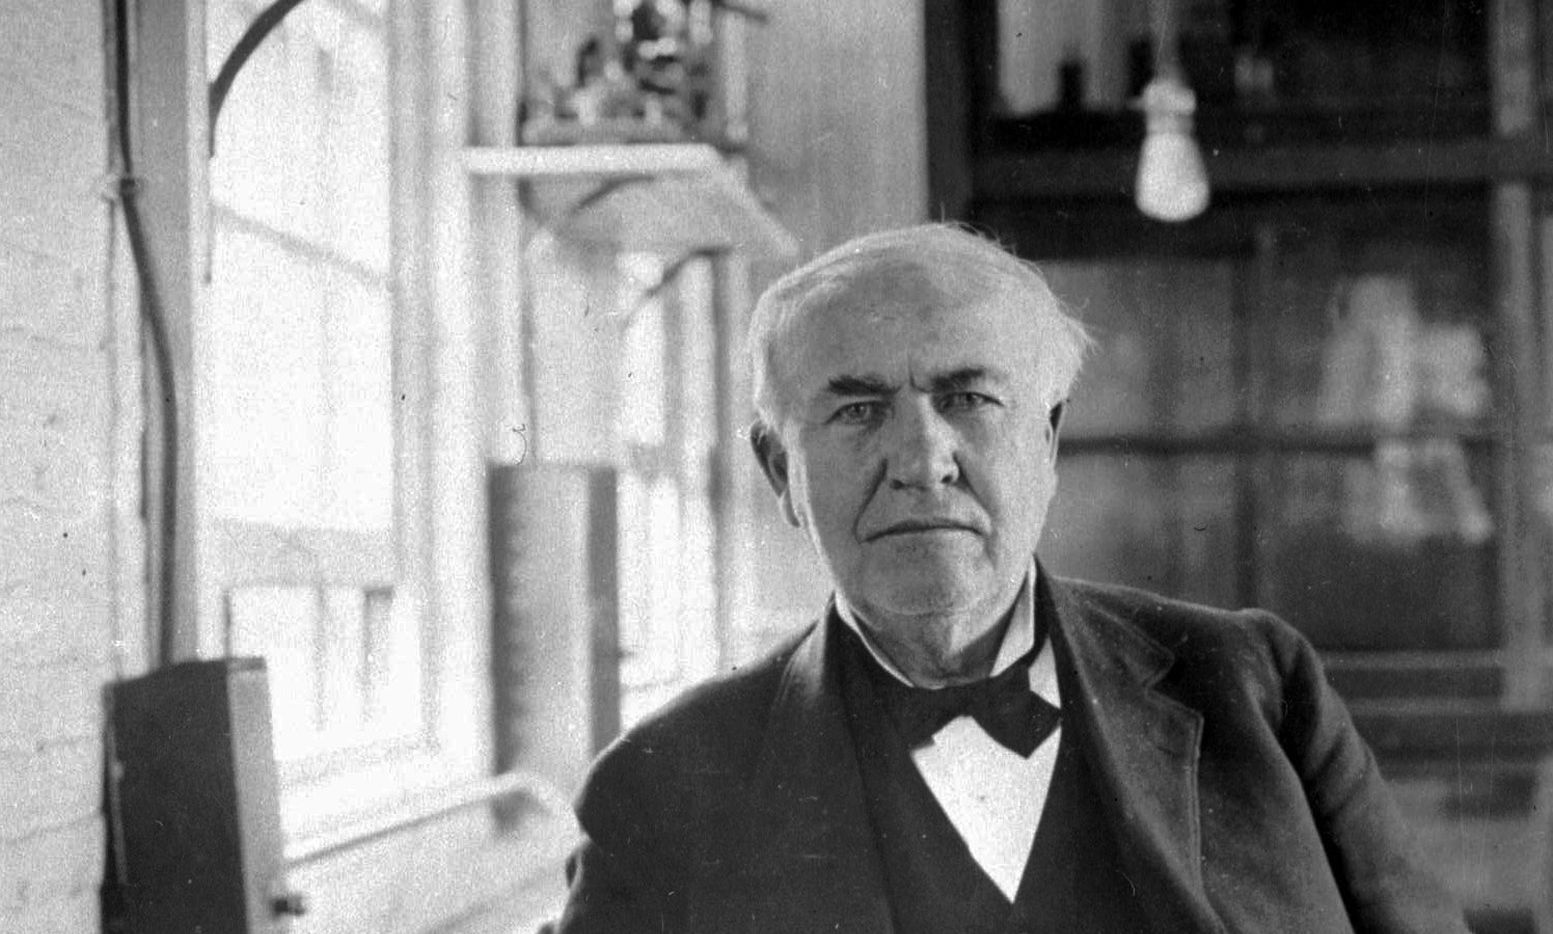 Thomas Alva Edison helped bring about modern society with his innovations such as the incandescent light bulb.